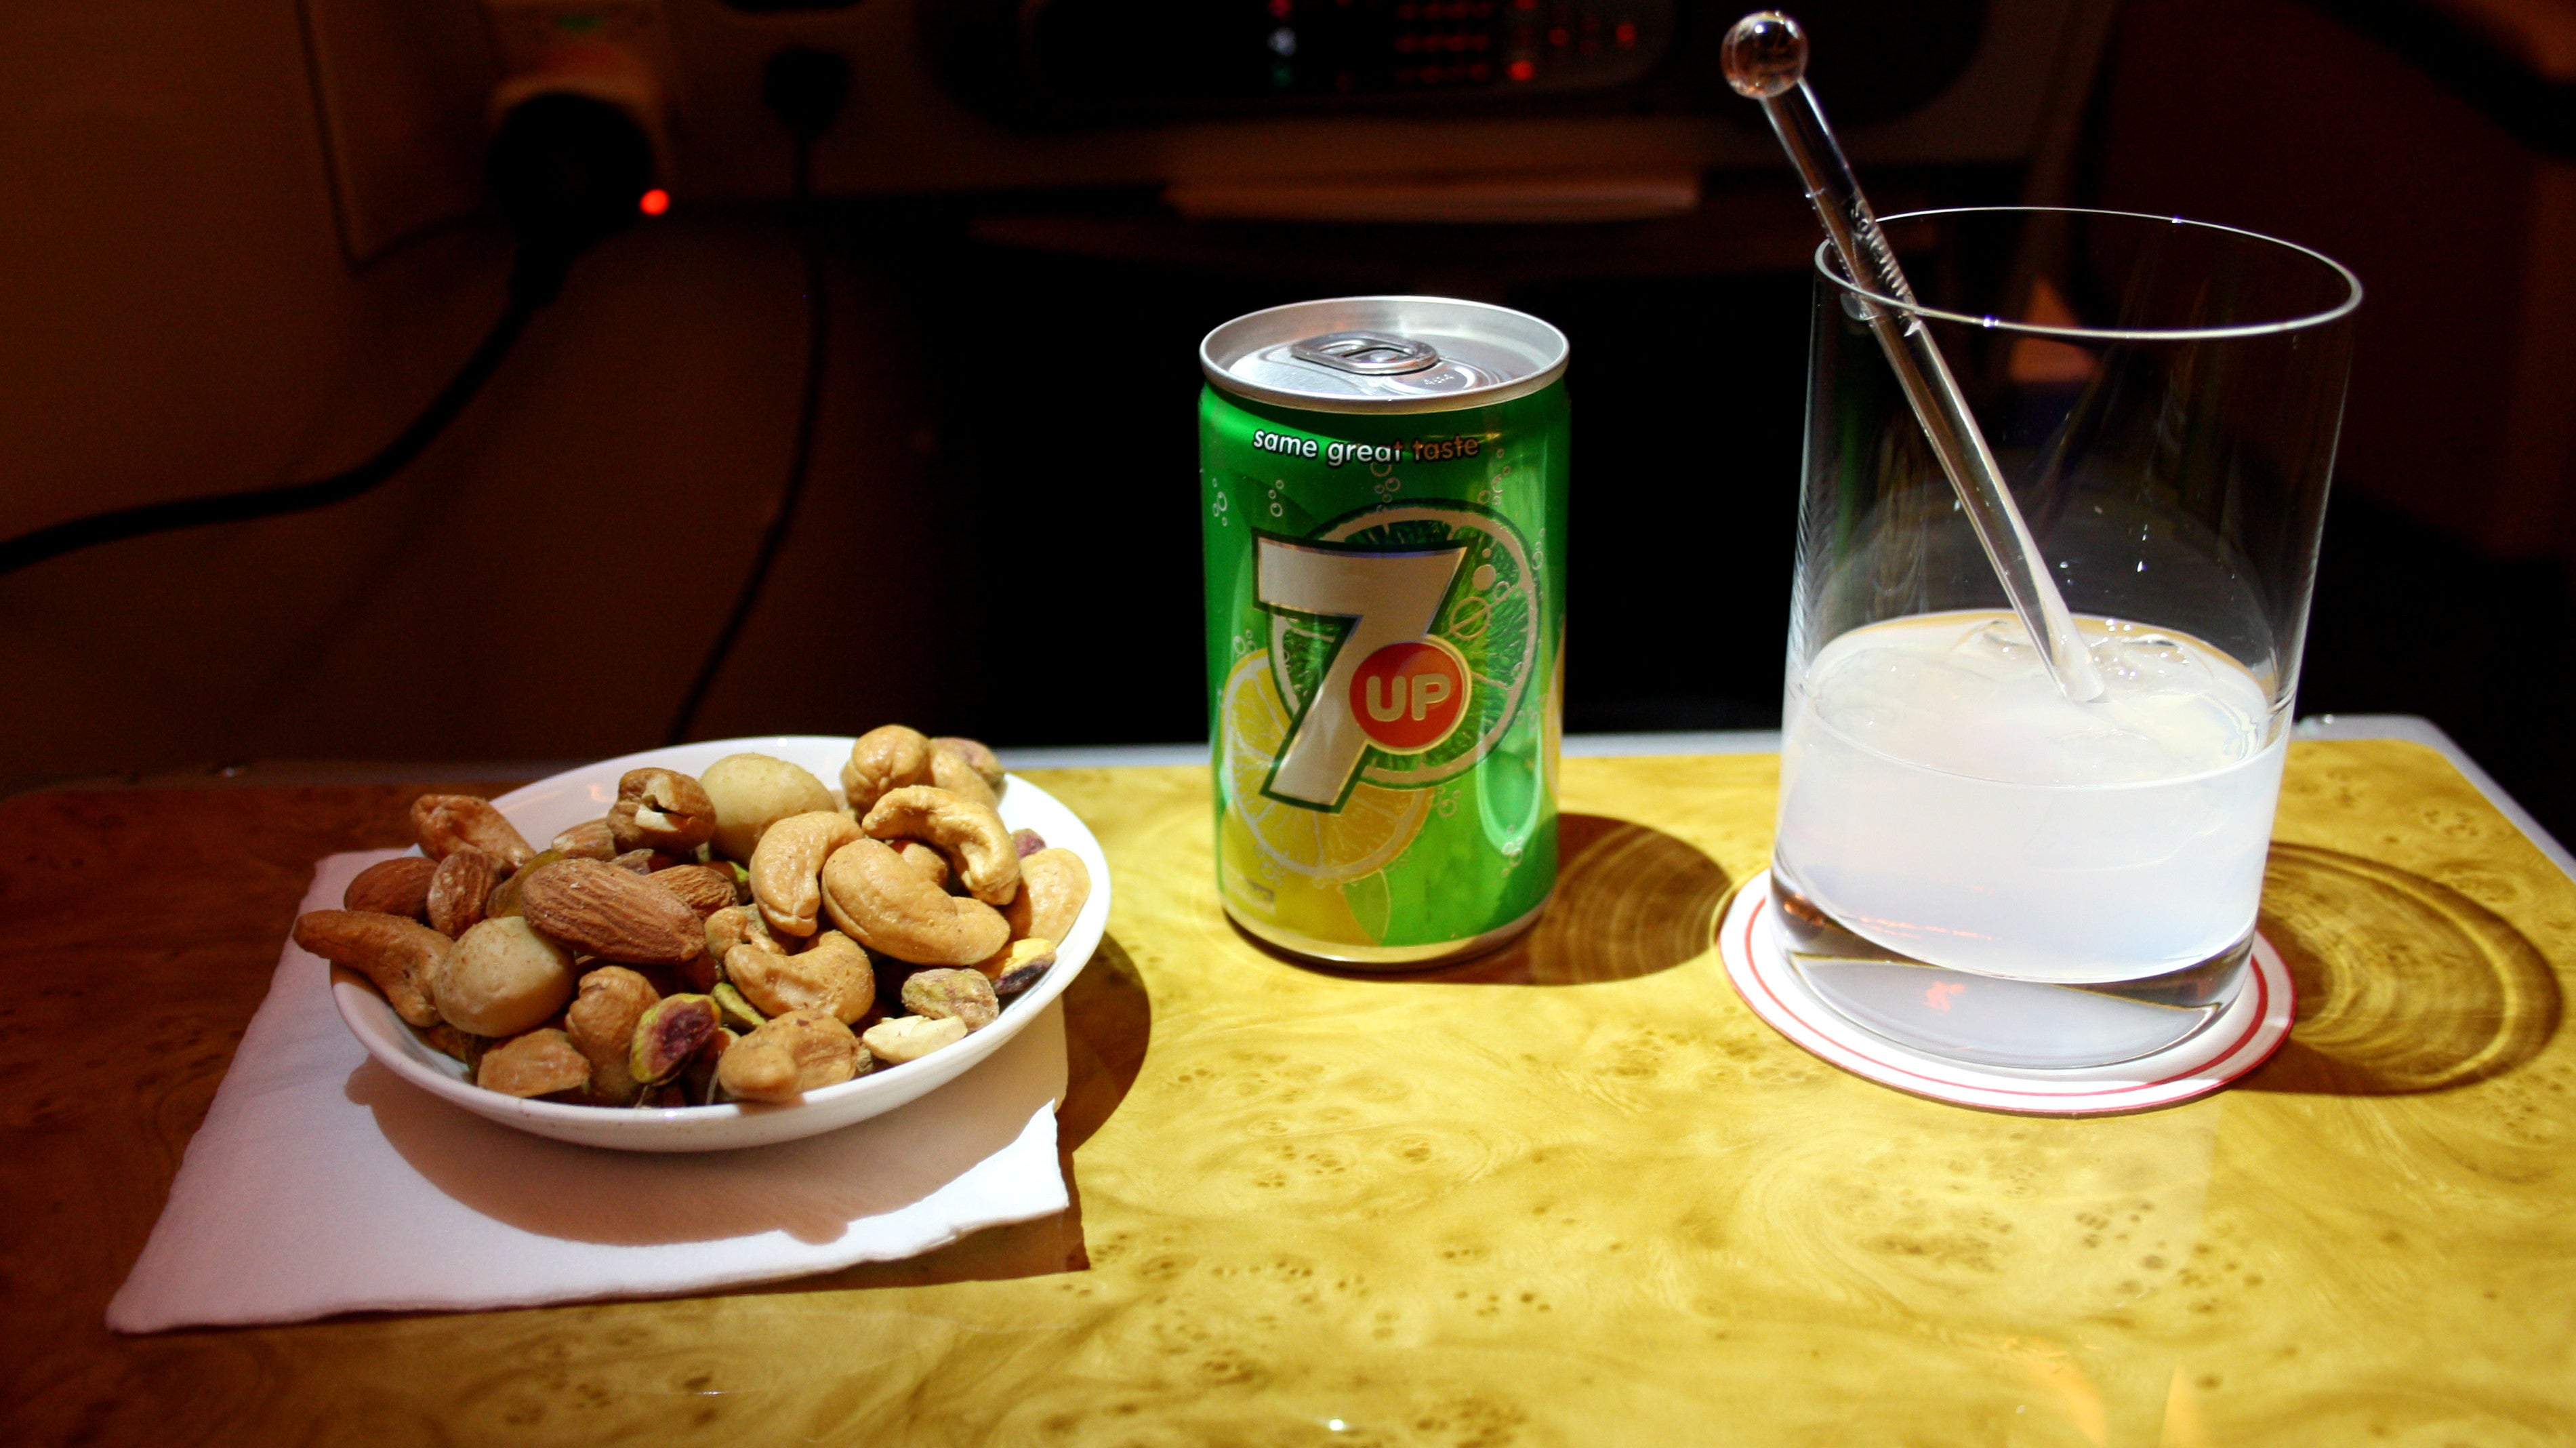 How To Get Airlines To Accommodate Your Food Allergy